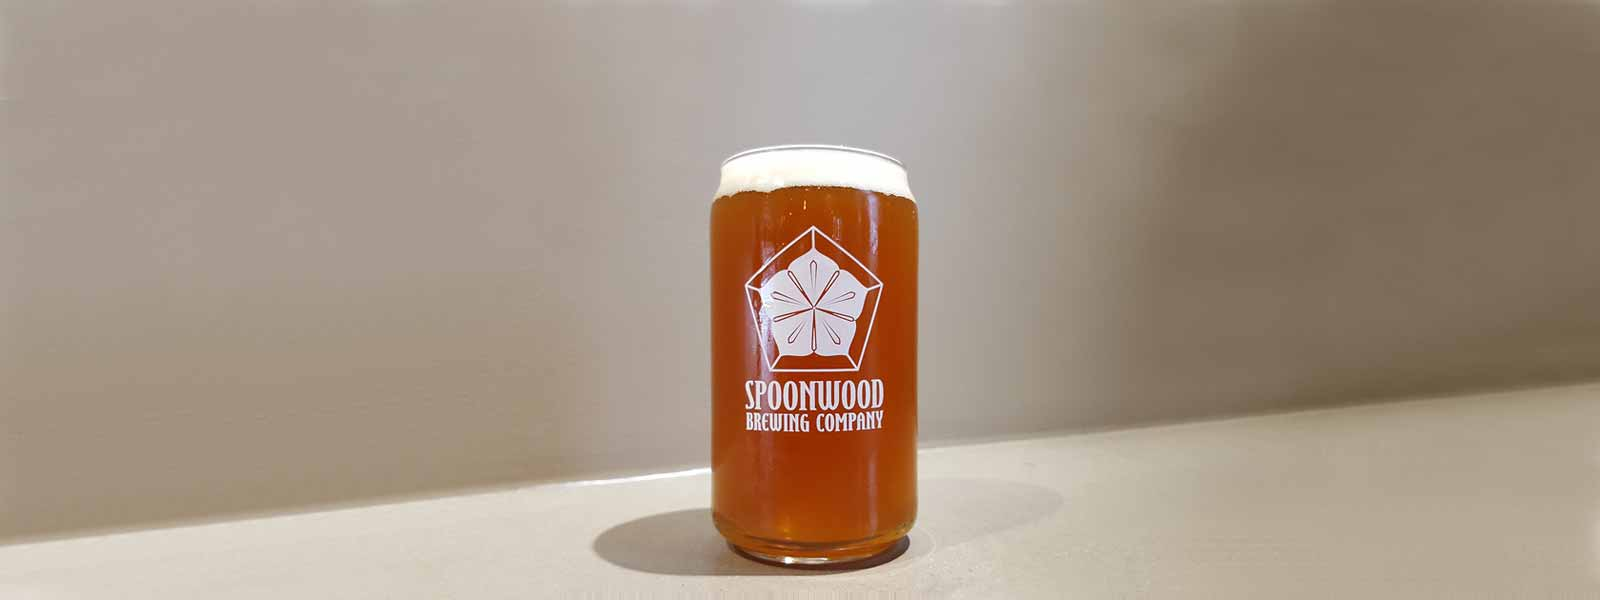 Spoonwood Brewing Co